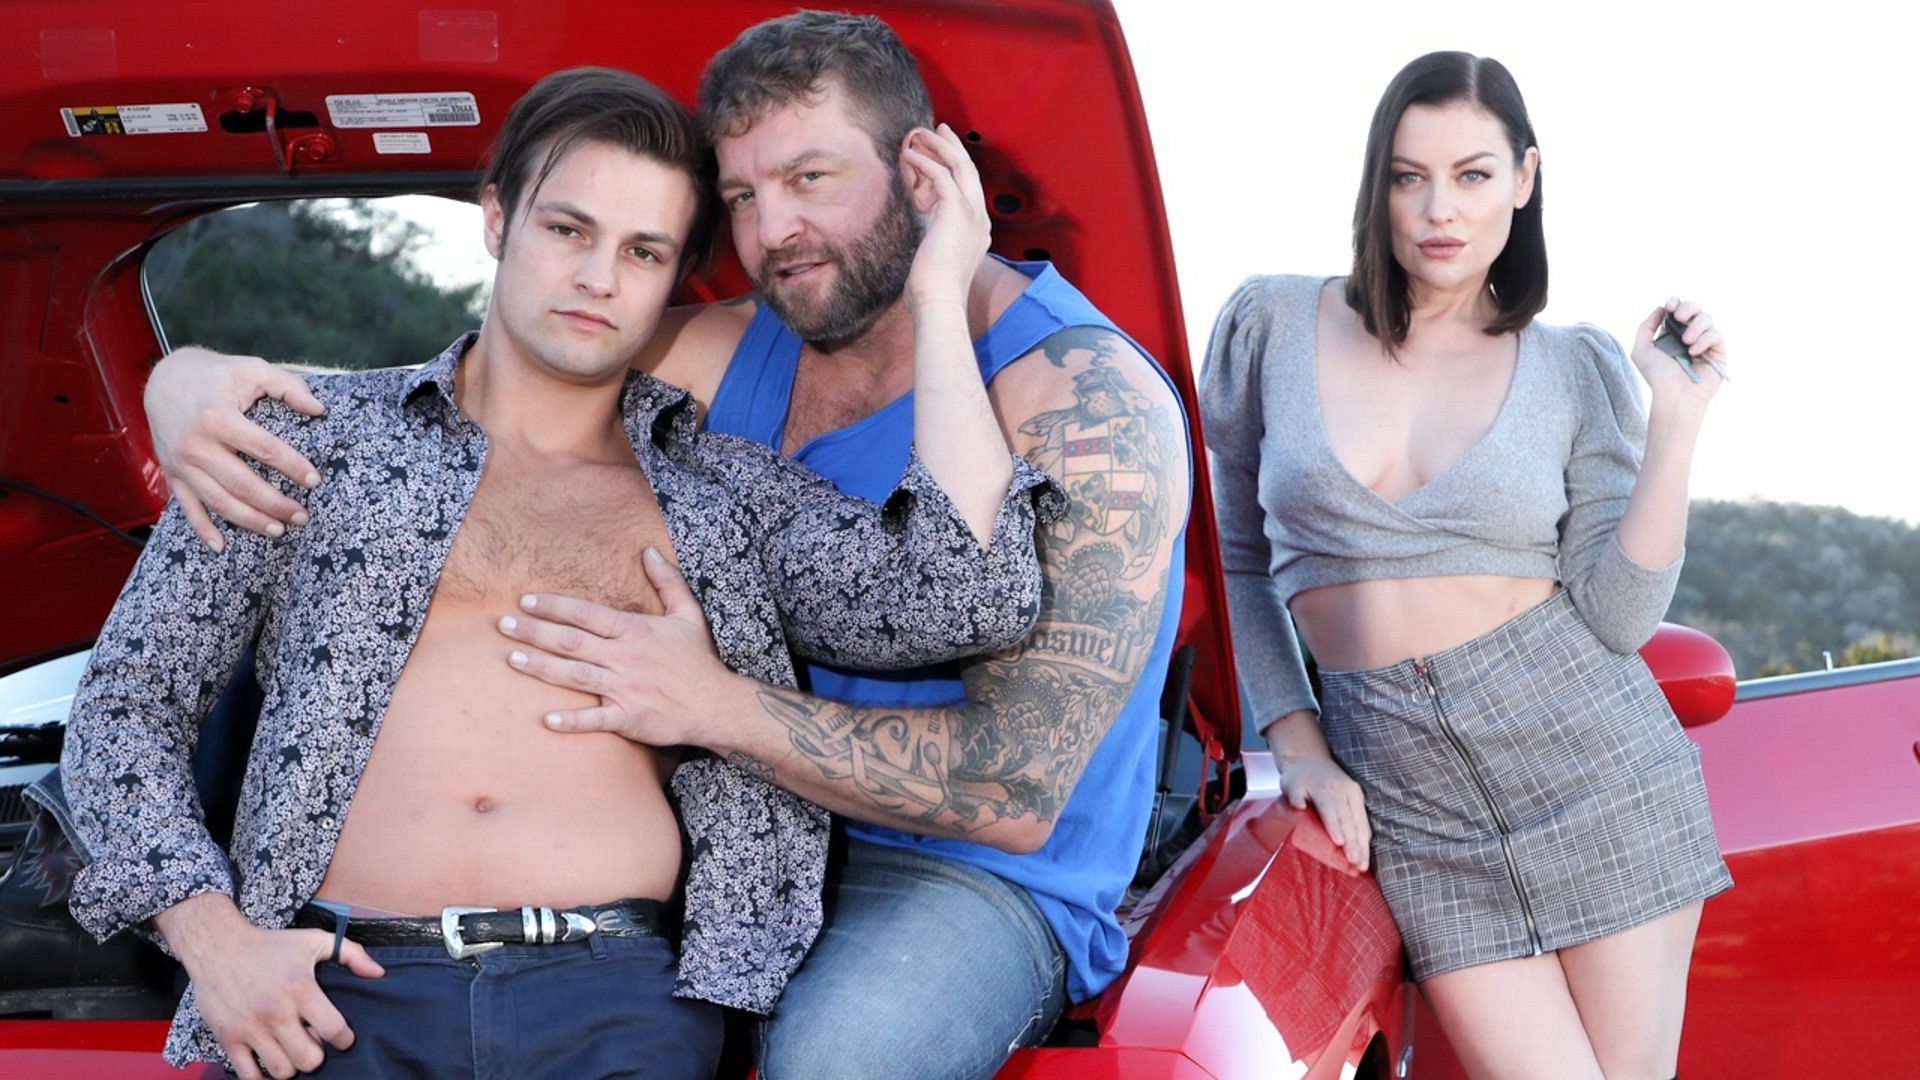 Drive Bi - Colby Jansen & Sovereign Syre & Charlie Patterson 1